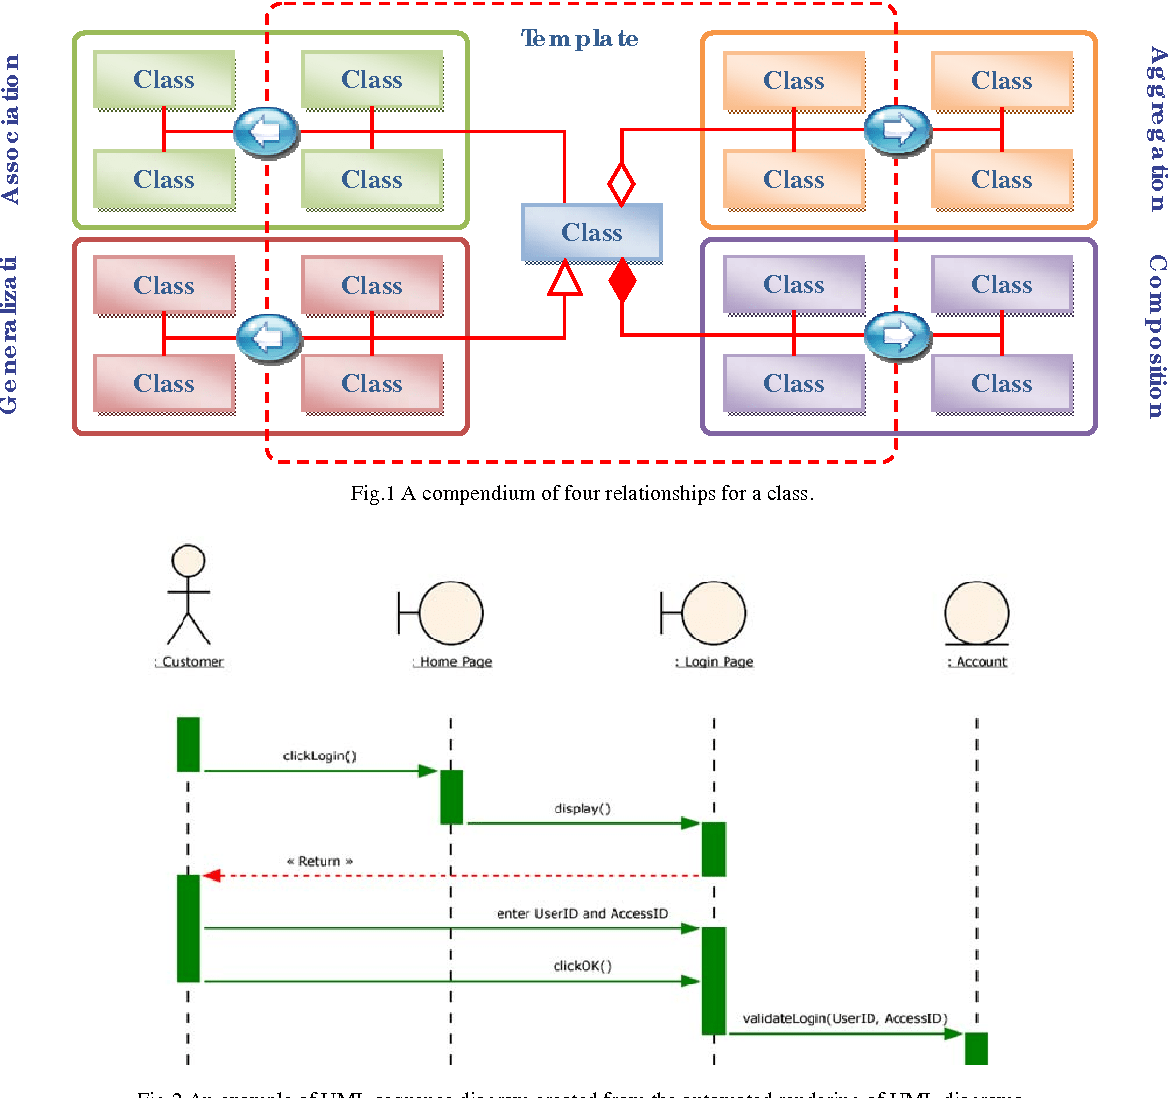 hight resolution of fig 2 an example of uml sequence diagram created from the automated rendering of uml diagrams